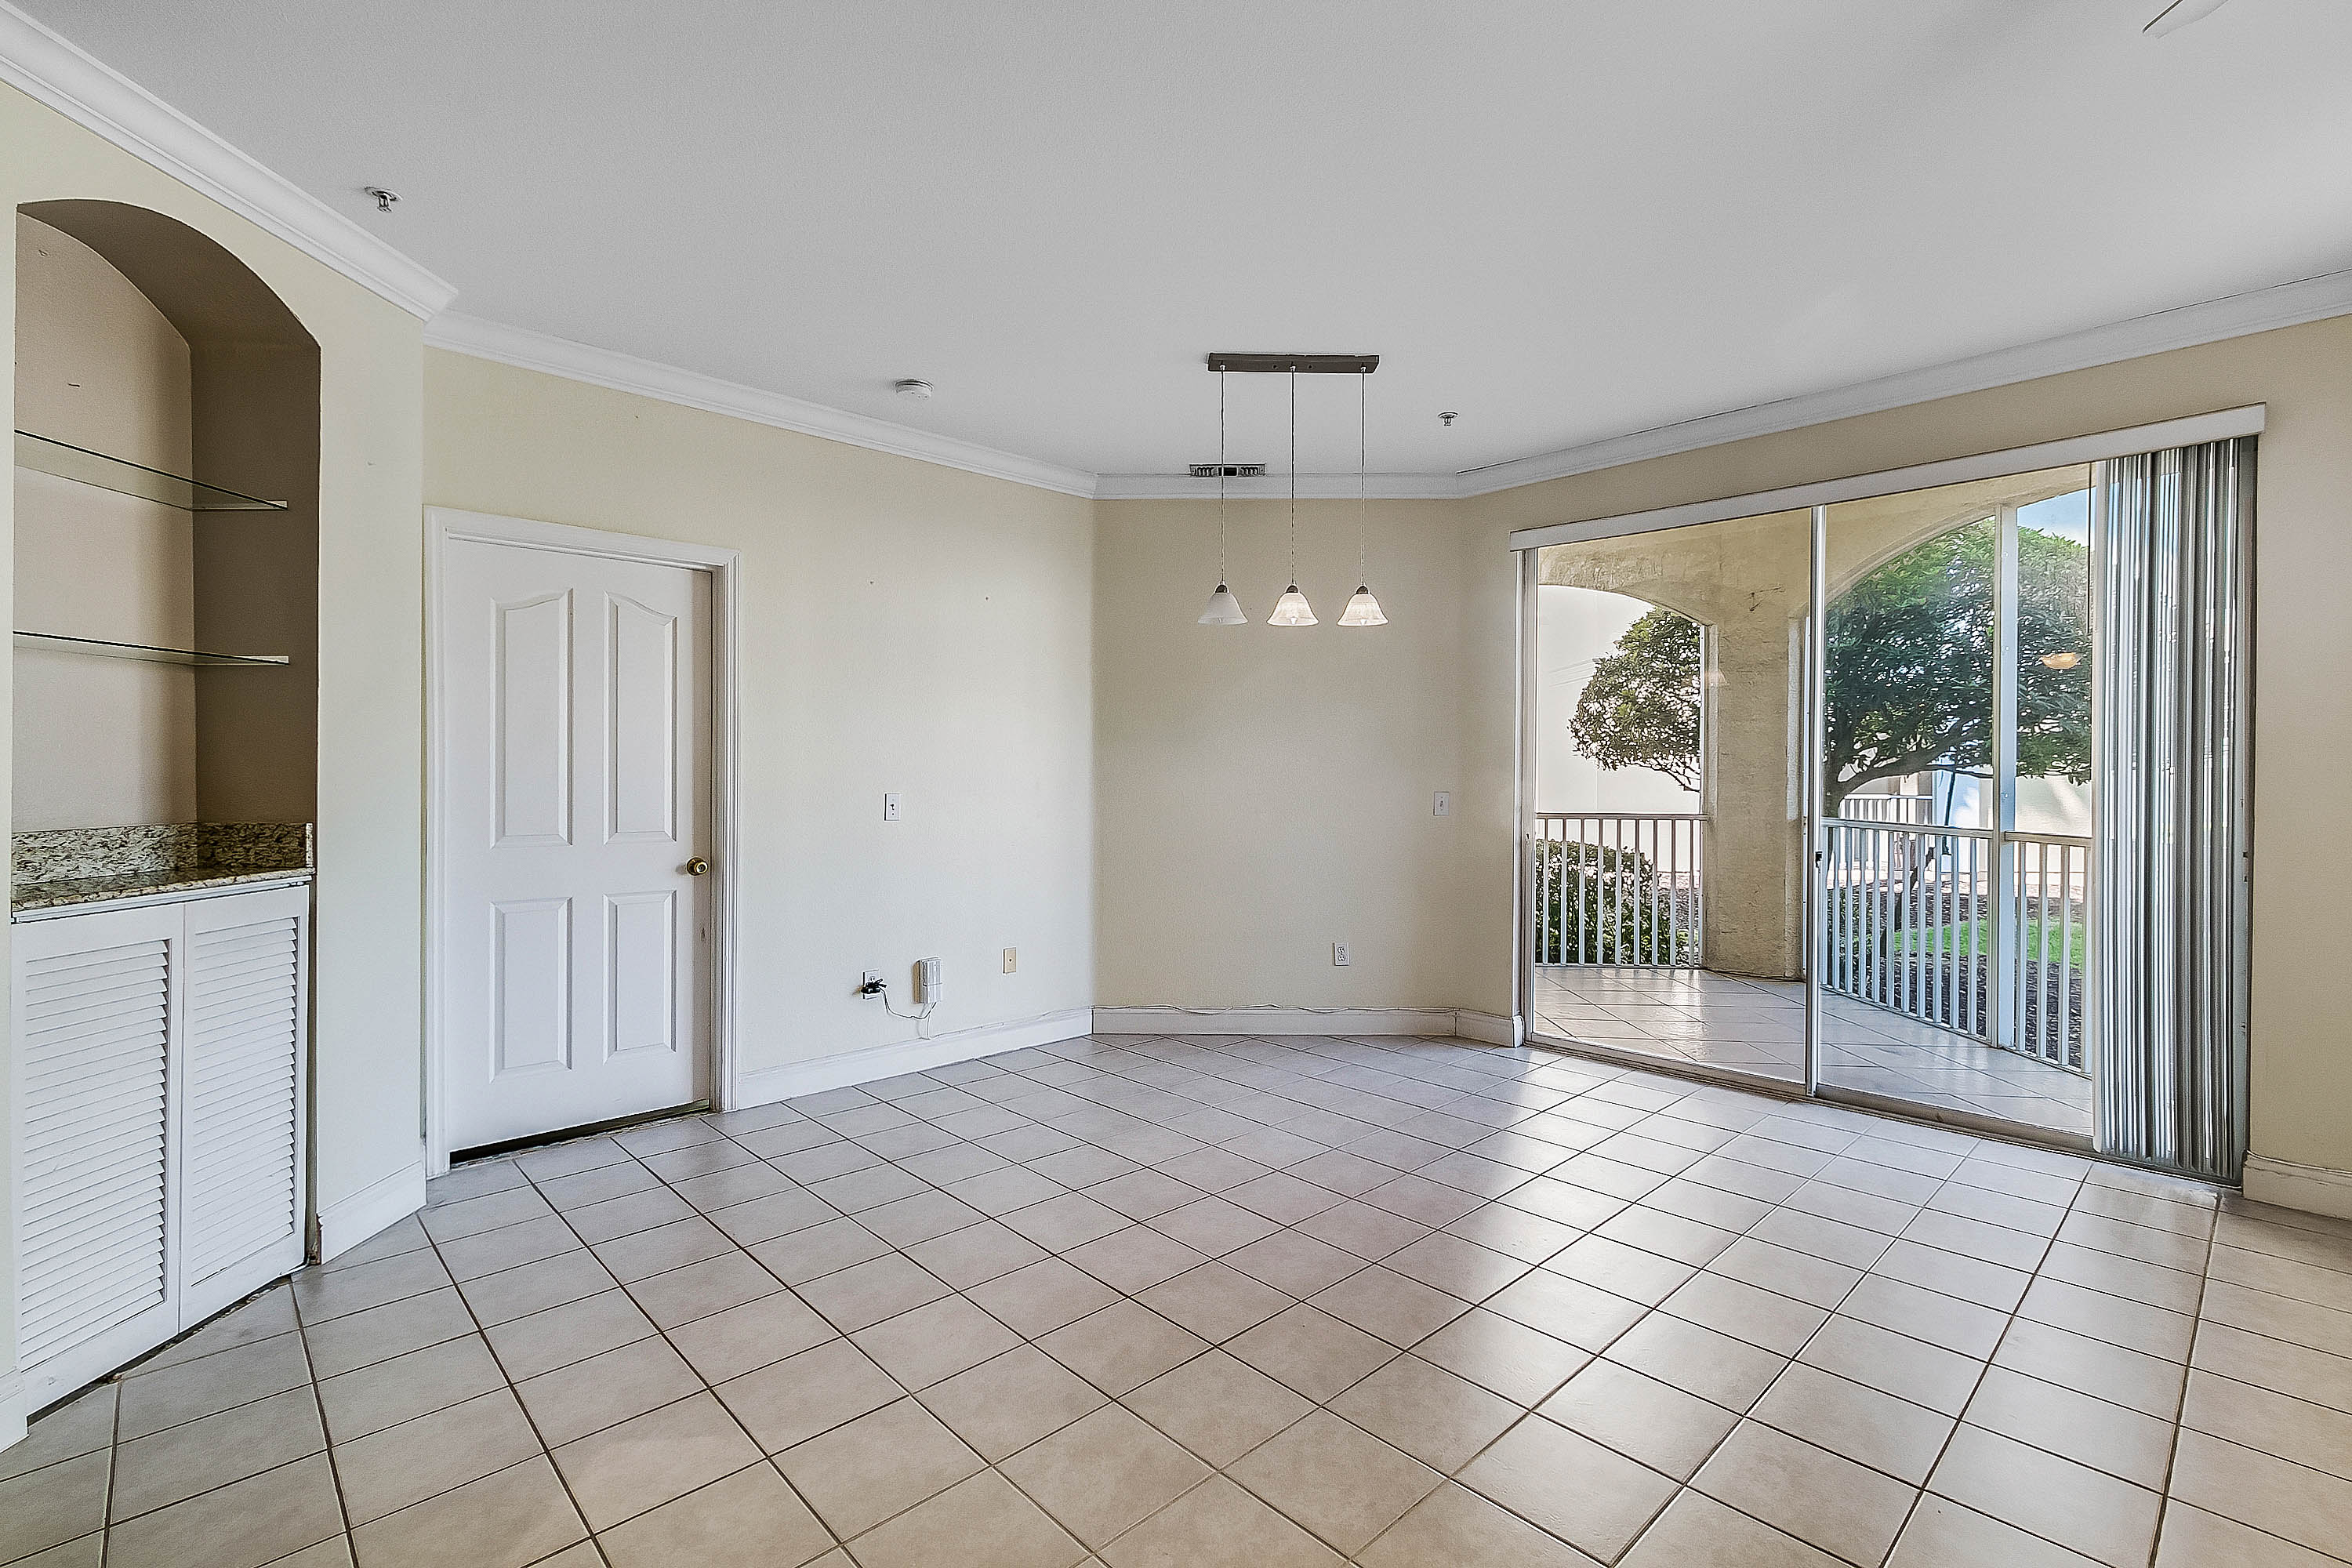 2639-maitland-crossing-way--unit-101--orlando--fl-32810----13.jpg